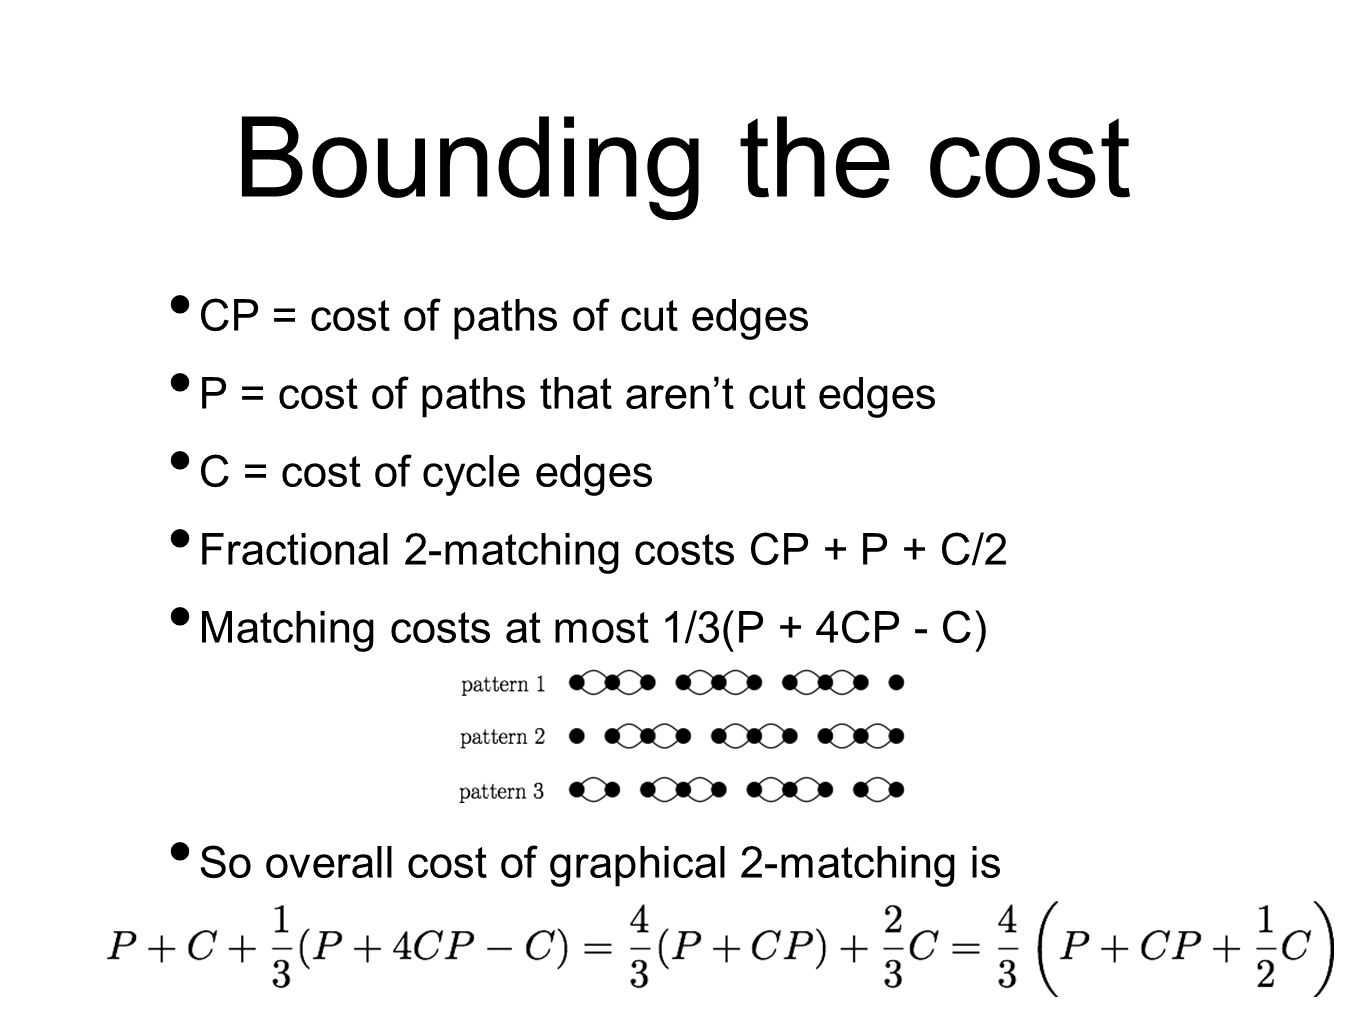 Bounding the cost CP = cost of paths of cut edges P = cost of paths that aren't cut edges C = cost of cycle edges Fractional 2-matching costs CP + P + C/2 Matching costs at most 1/3(P + 4CP - C) So overall cost of graphical 2-matching is